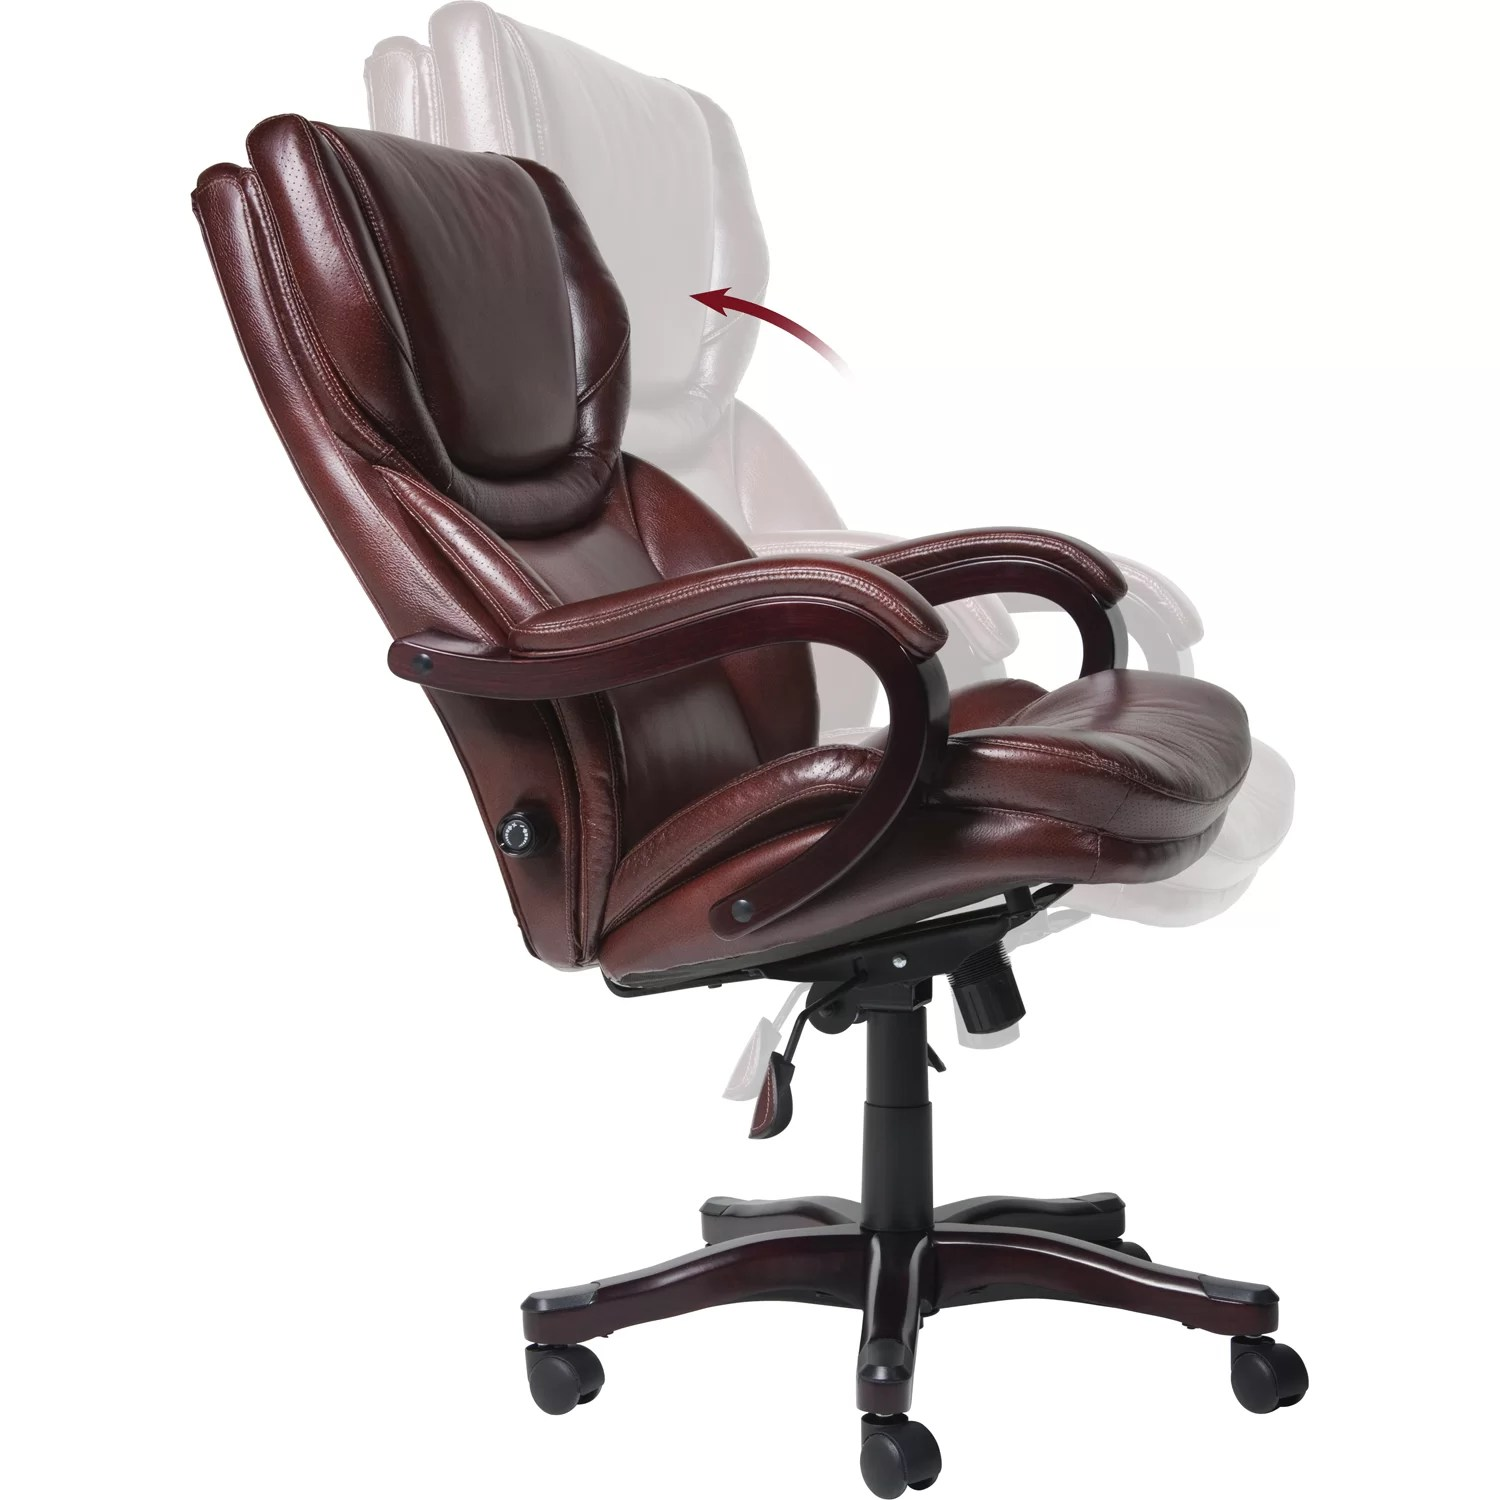 Best Big And Tall Office Chair Serta At Home Big And Tall Executive Chair And Reviews Wayfair